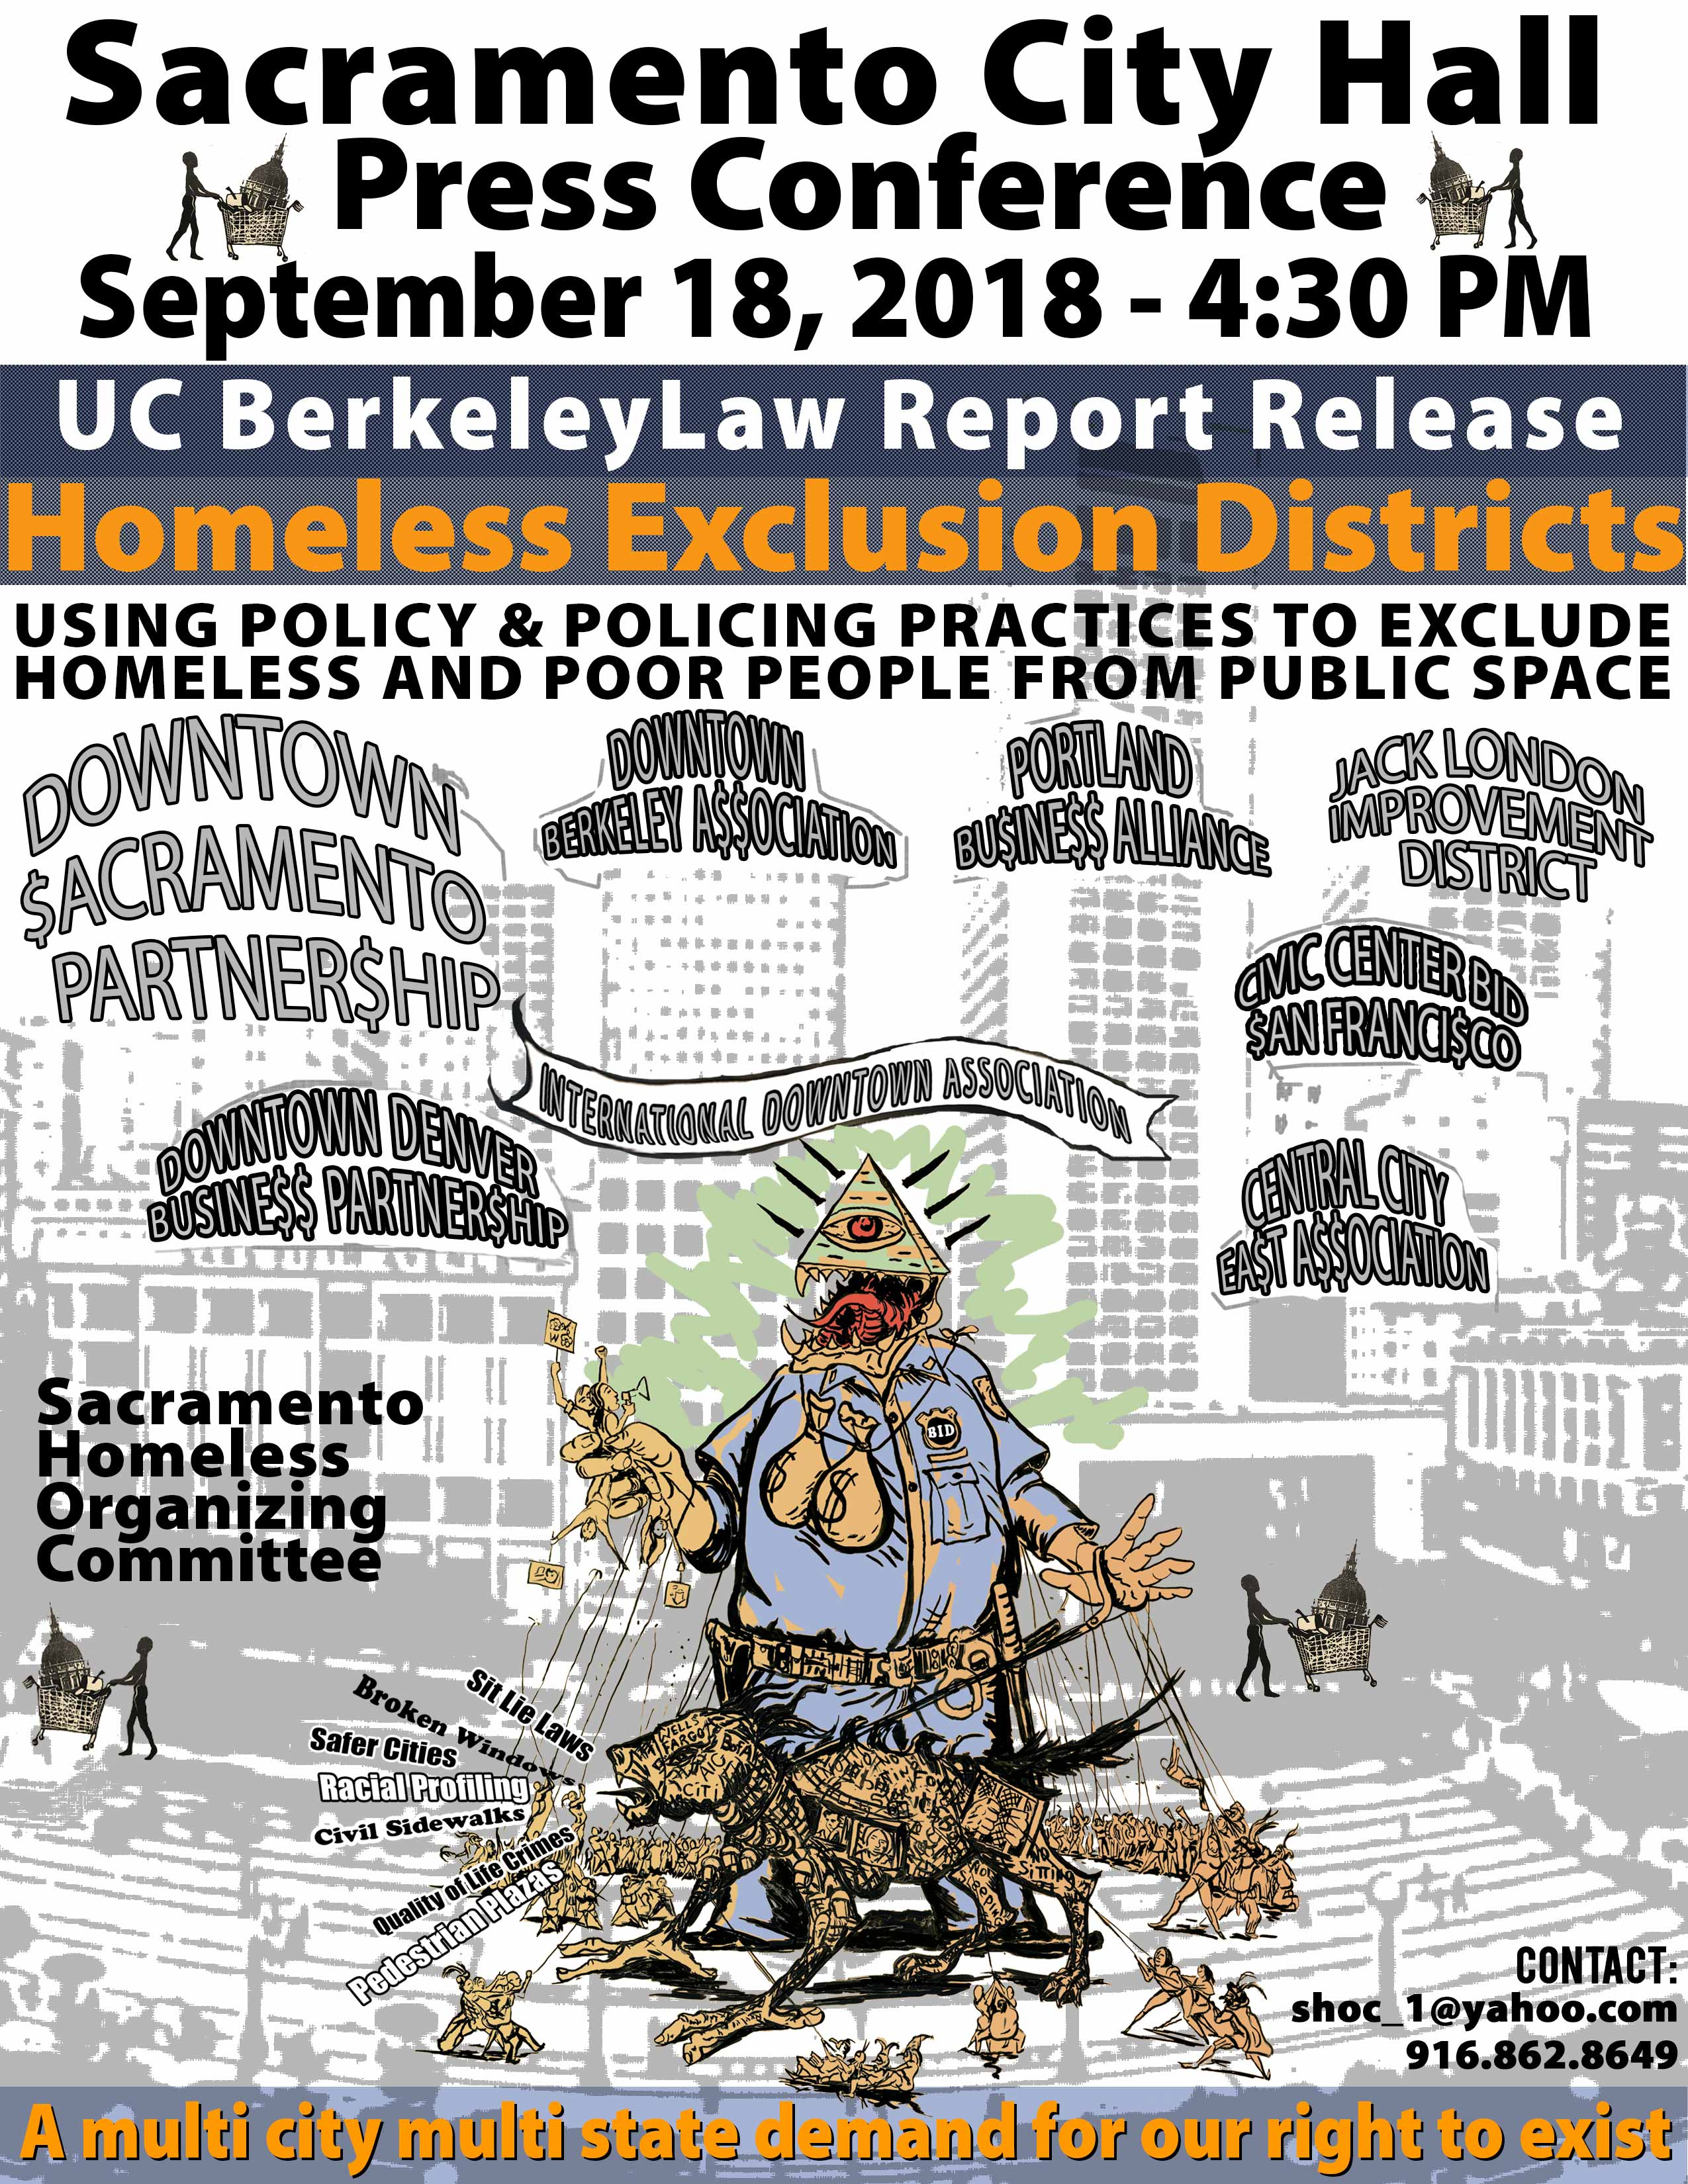 Simultaneous Press Conferences UC BerkeleyLaw Report Release Homeless Exclusion Districts. Using policy & policing practices to exclude homeless and poor people from public space